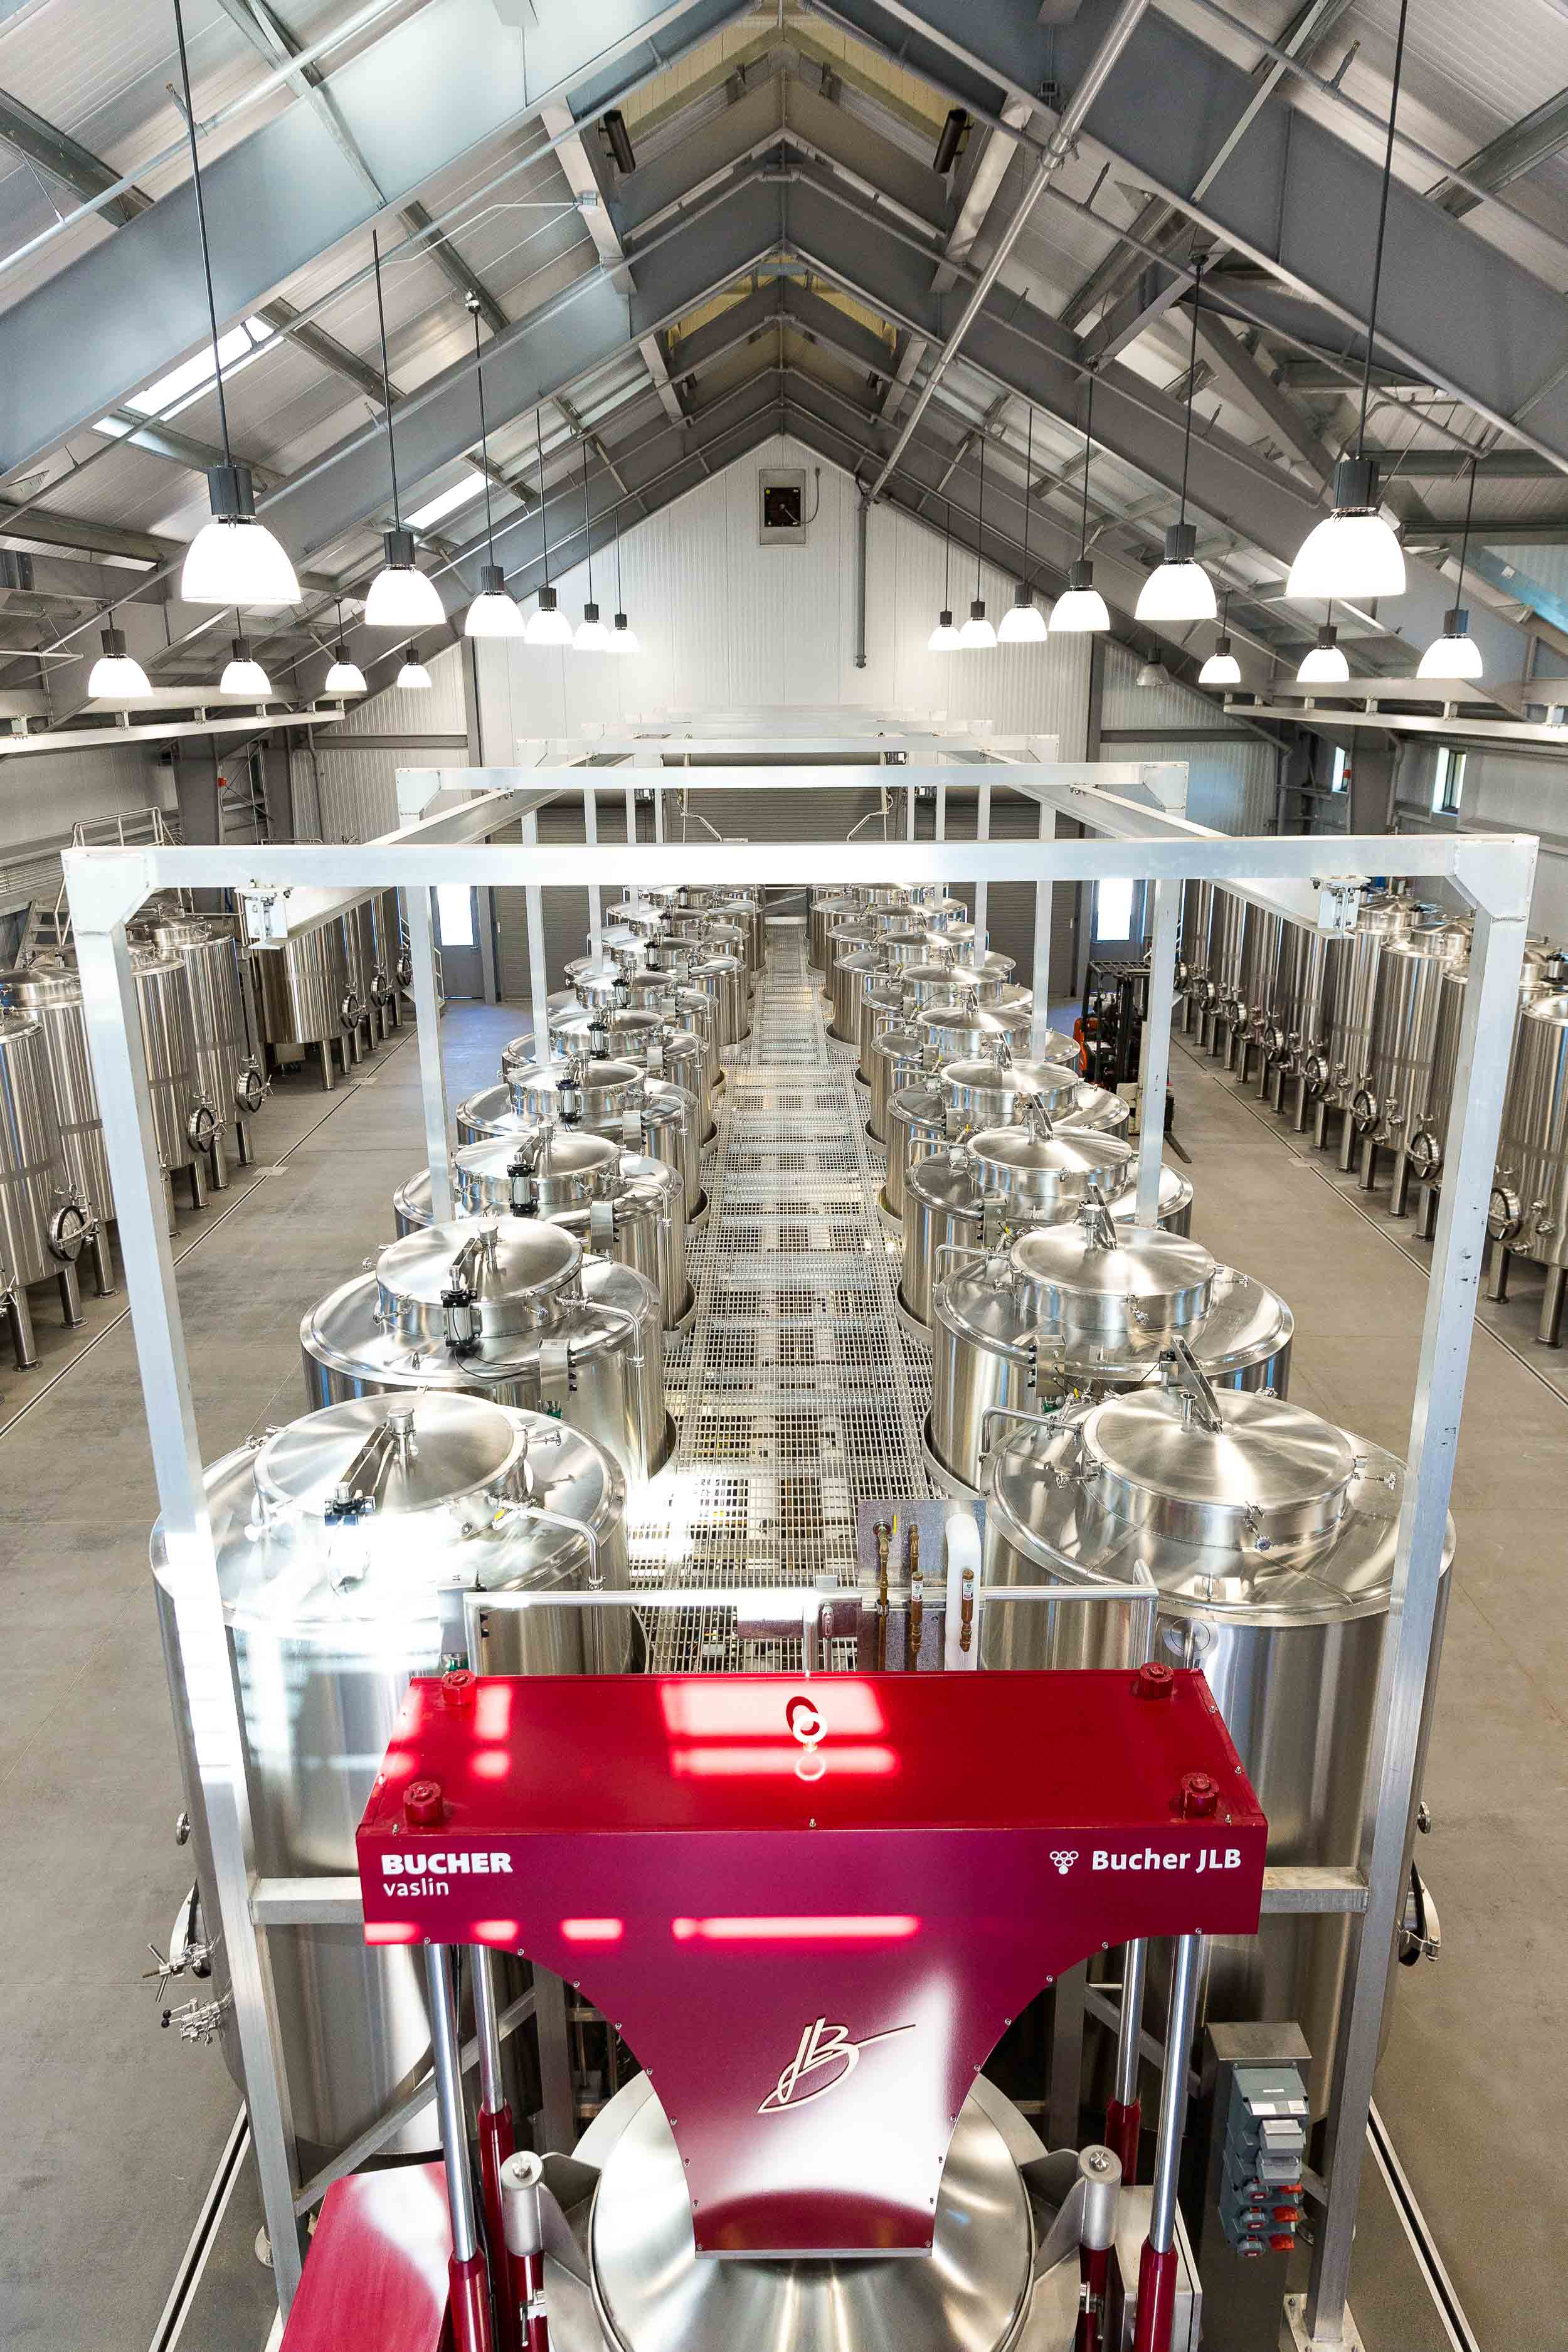 Wheeler Farms Wine - a winery that offers wine making equipment for use by other vintners.